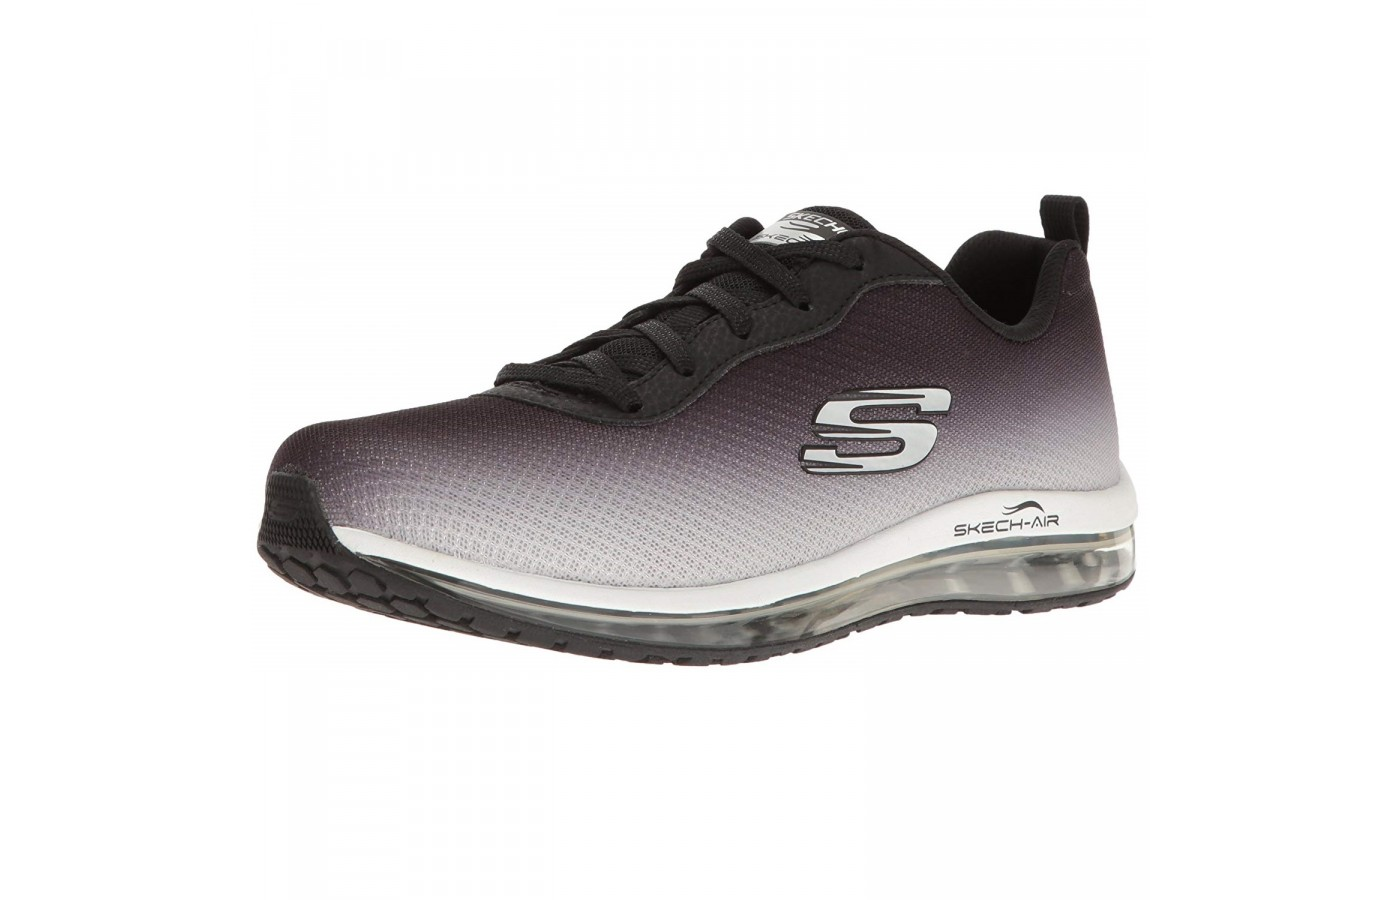 The Skechers Skech Air offers soft woven flat knit mesh in order to offer the highest level of breathability.